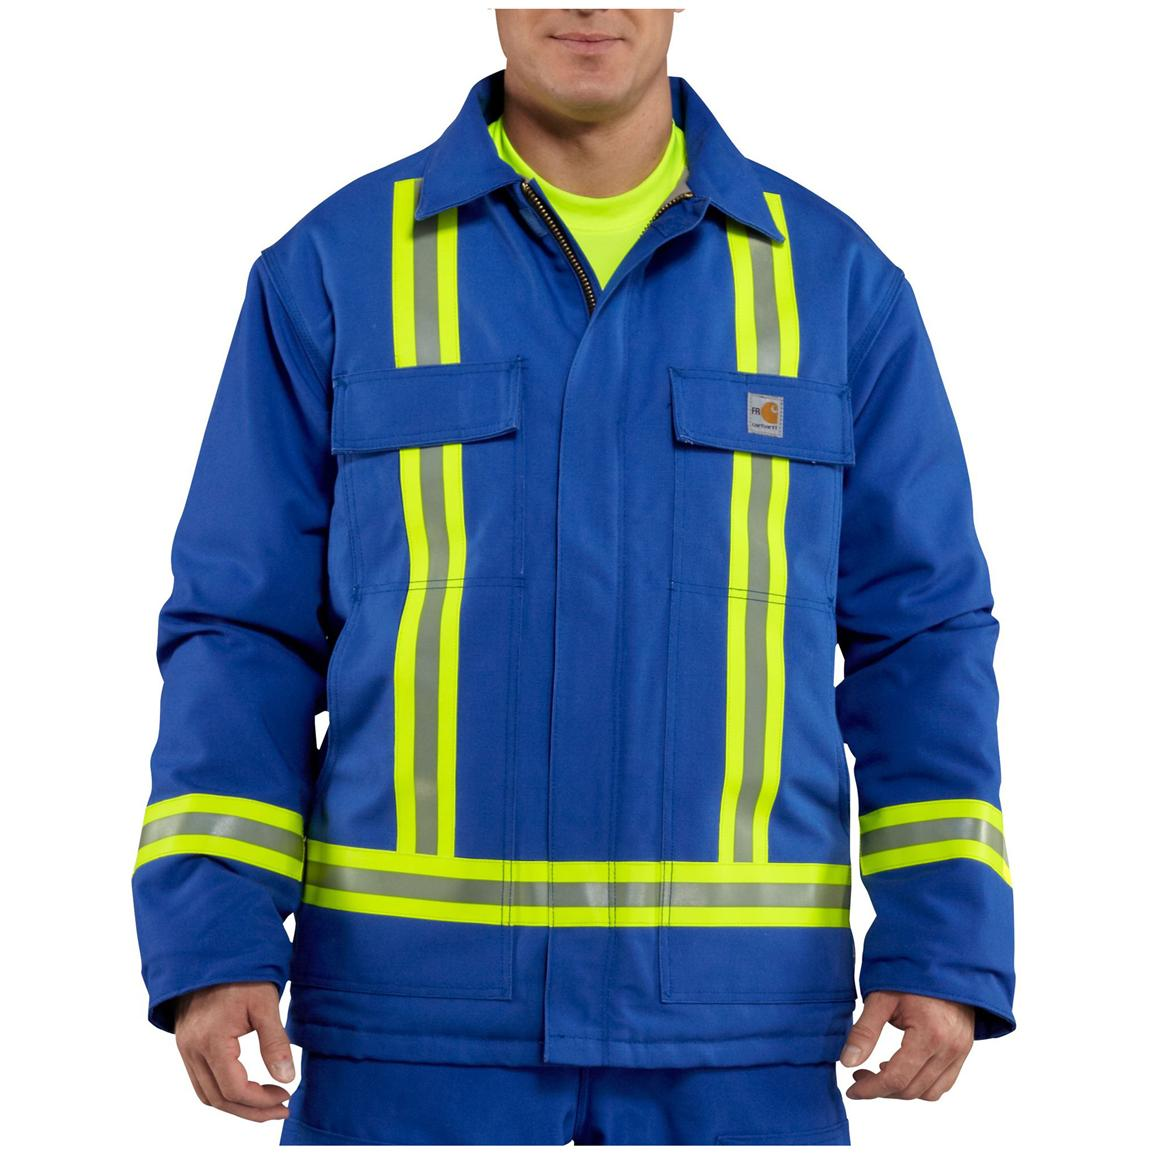 Men's Carhartt® Flame-resistant Traditional Insulated Duck Jacket with Reflective Stripes